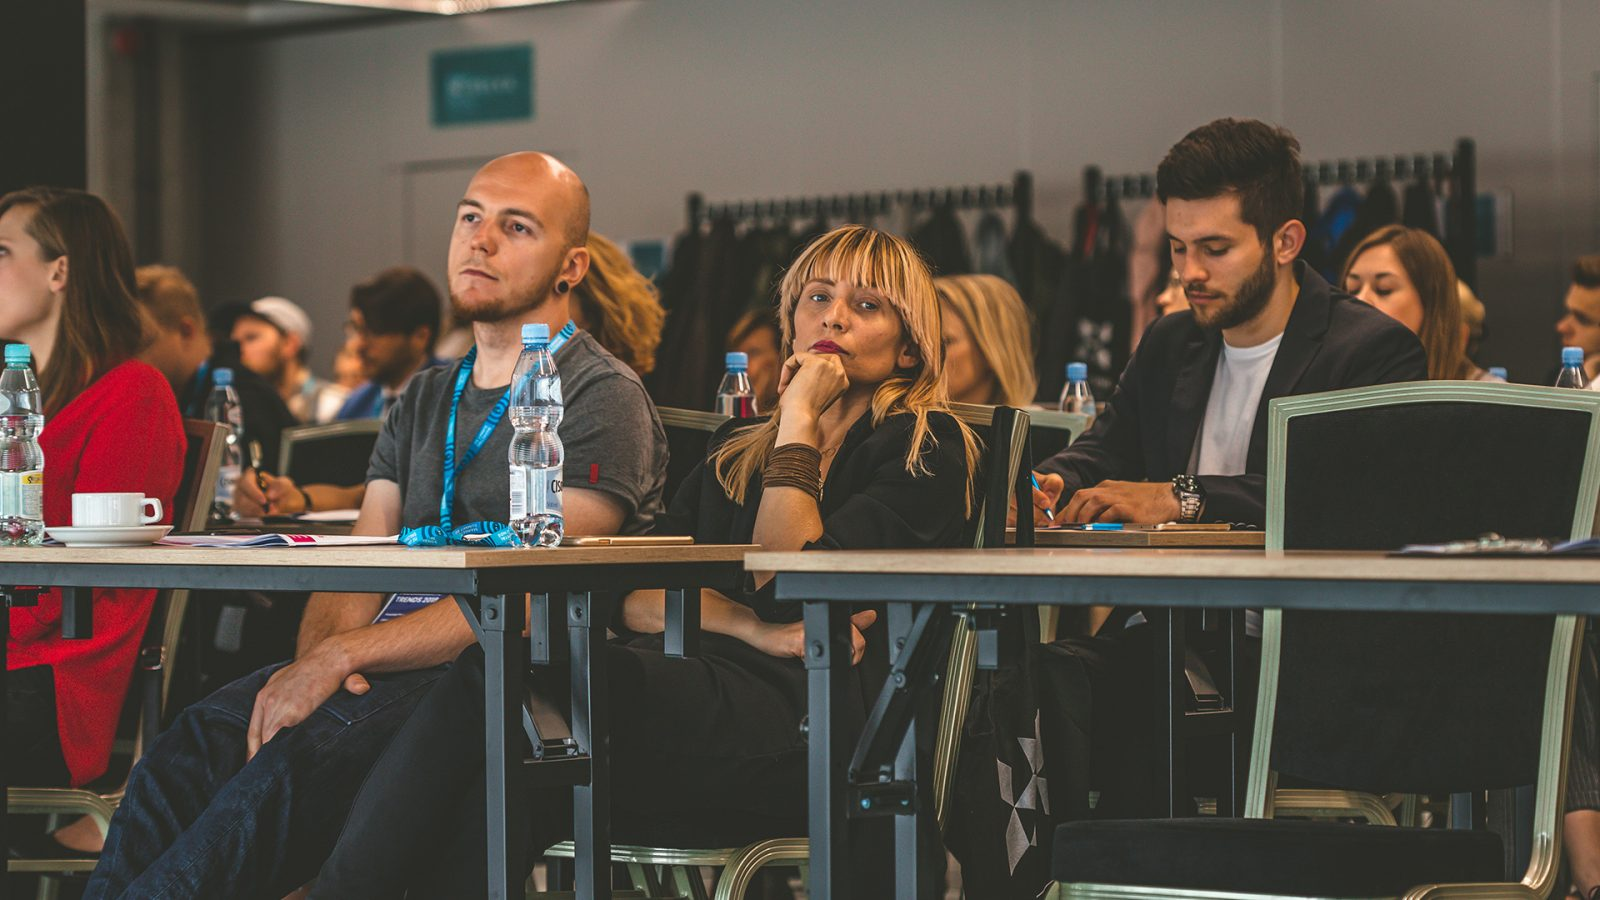 EUEXS_EVENT_INFLUENCER_GENERATION_Z_2018_8